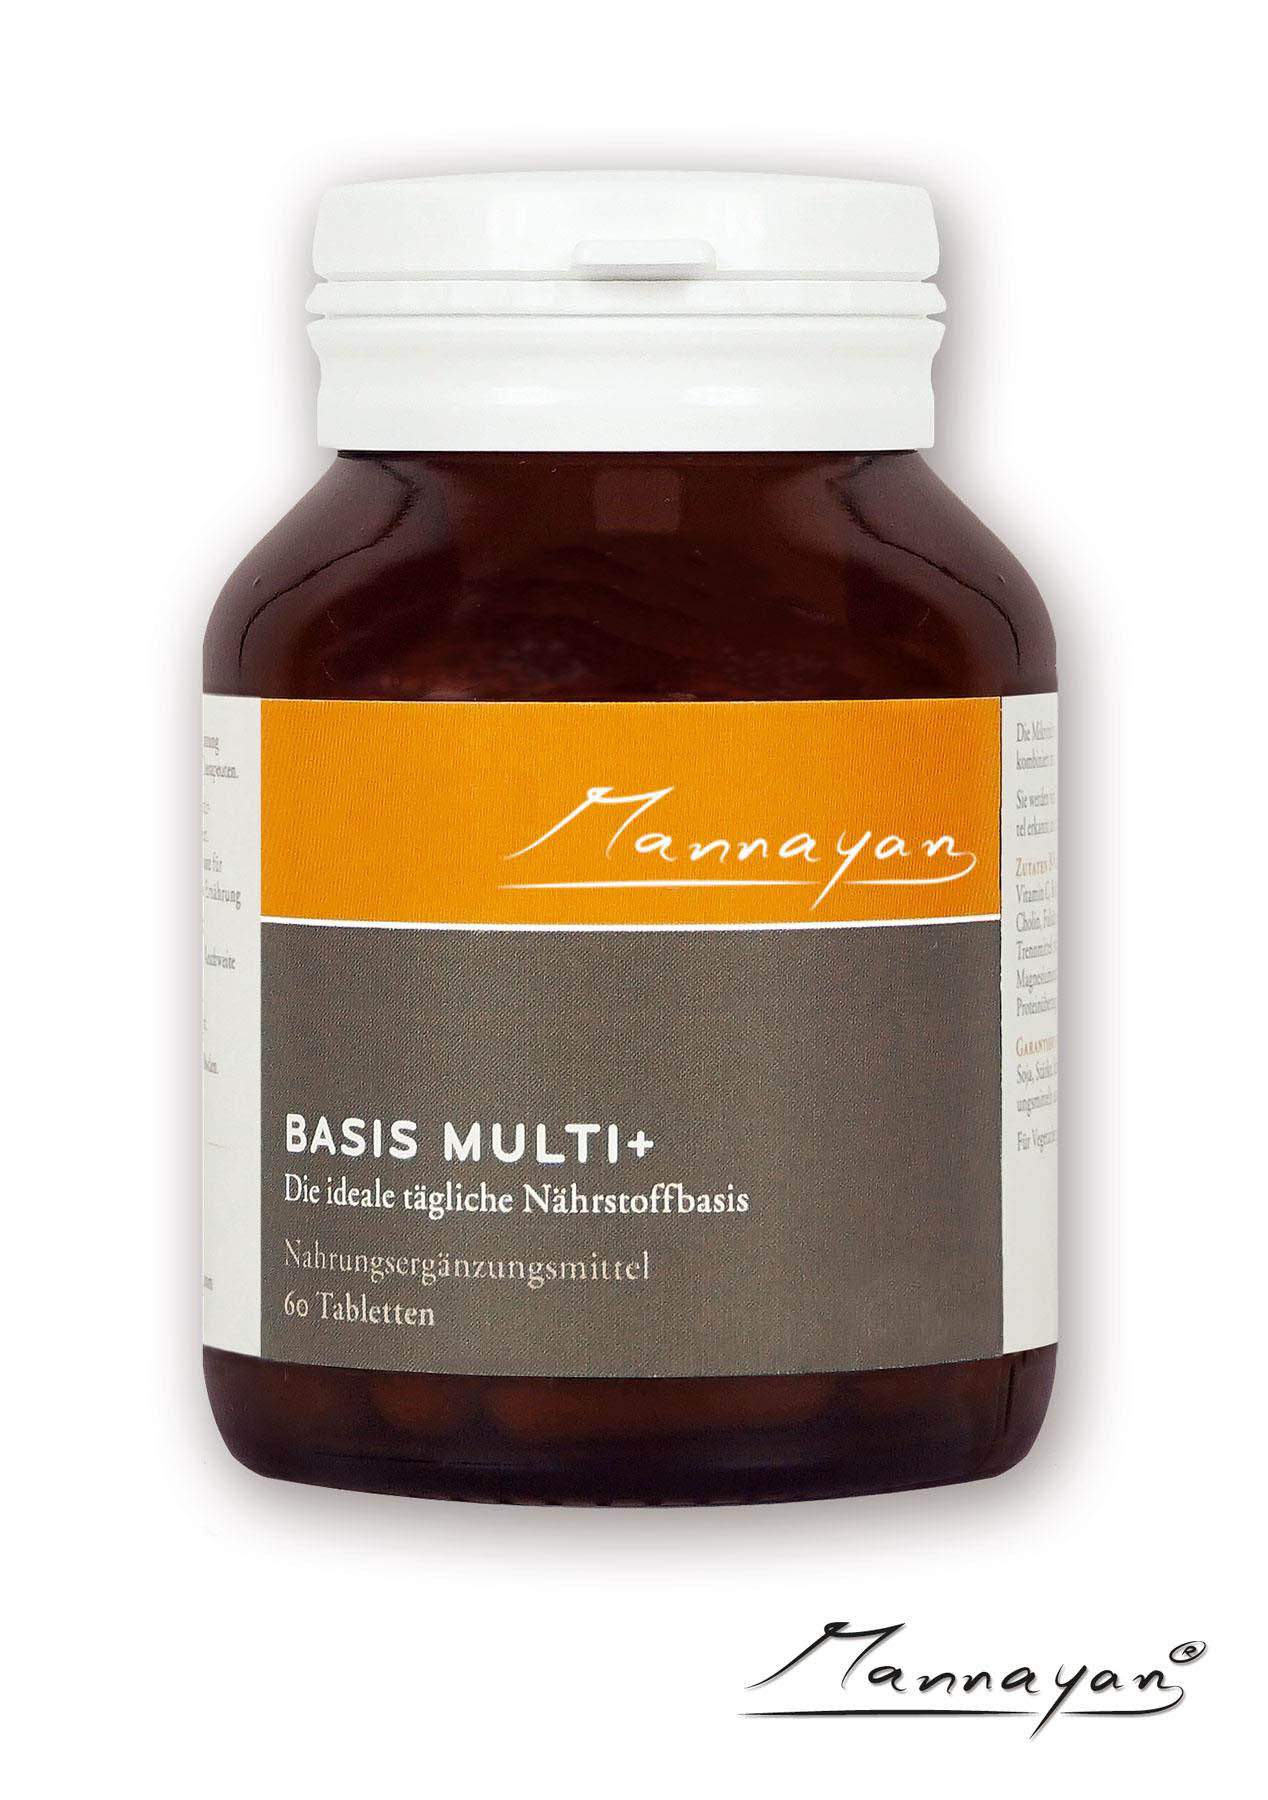 Basis Multi+ von Mannayan